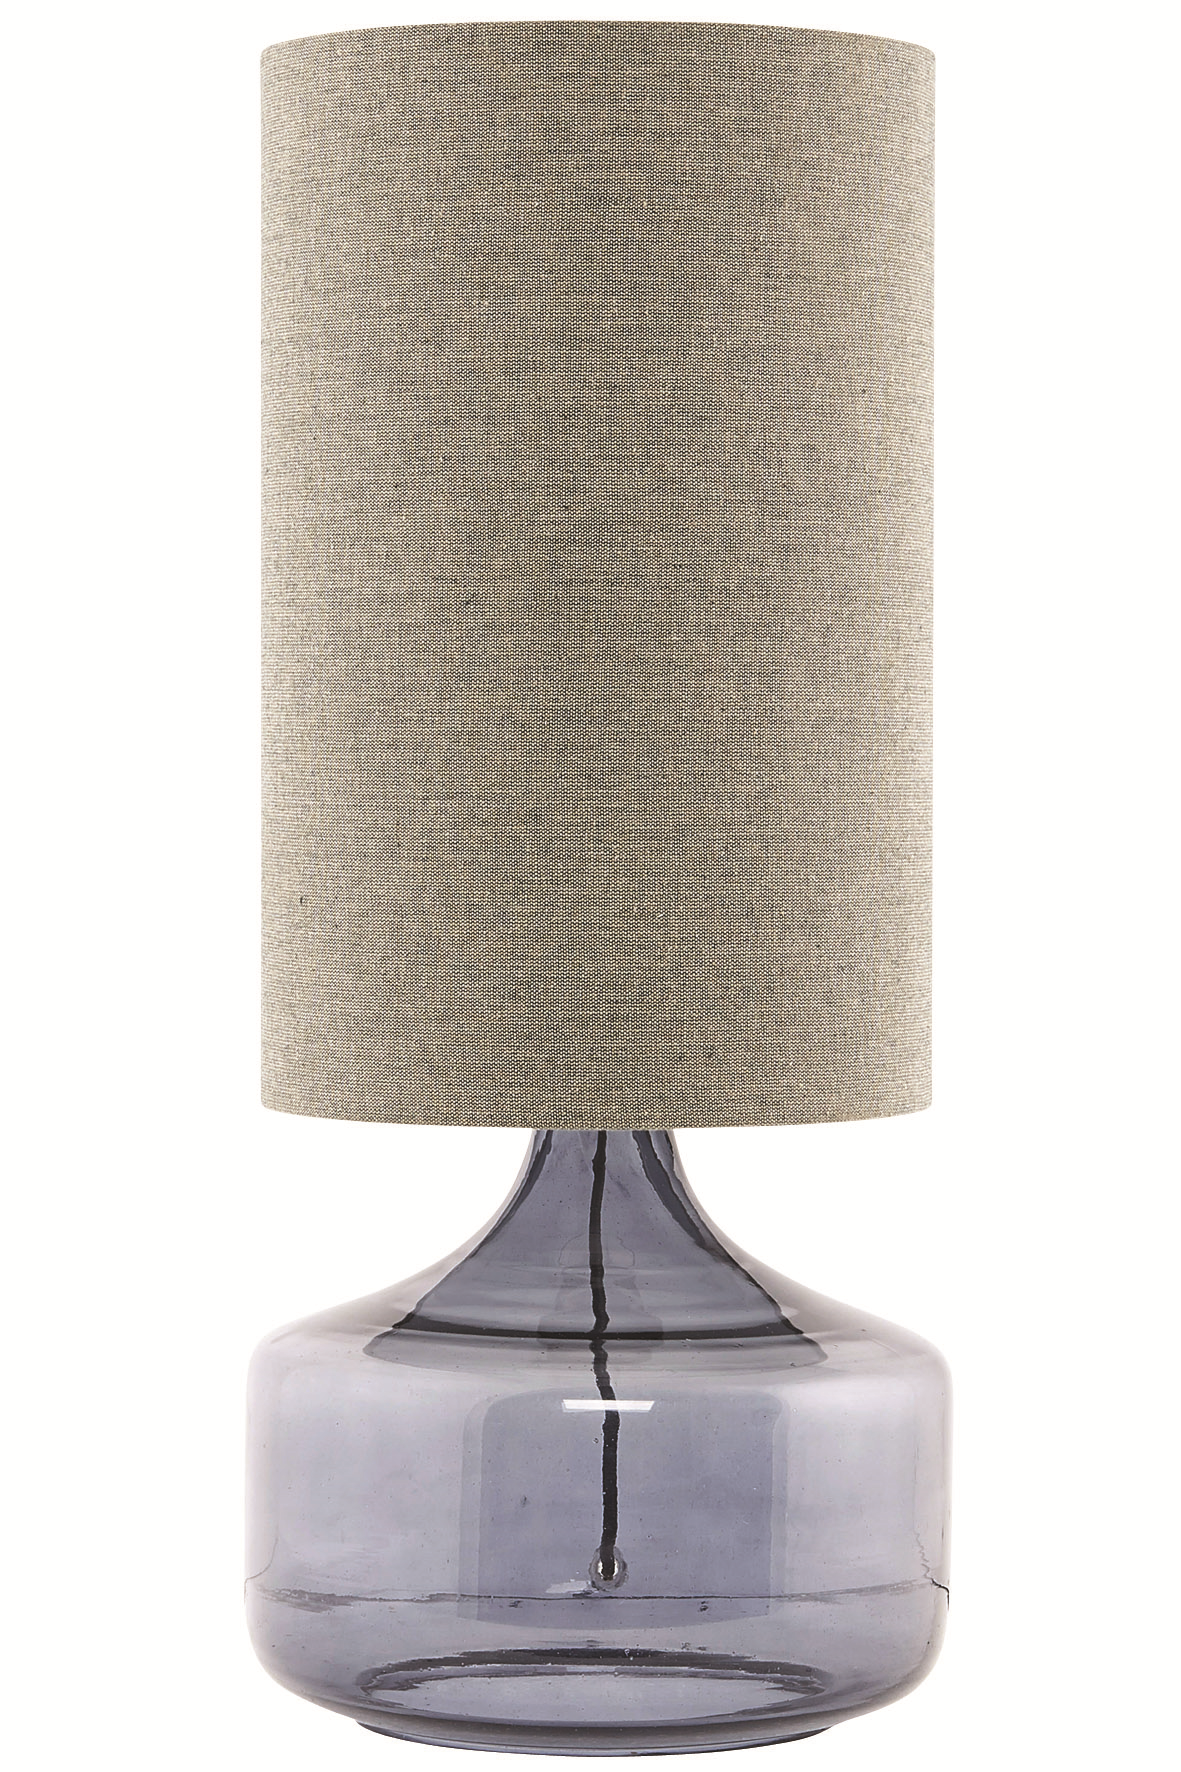 lampa stoowa the bottle szara sklep whitehousedesignpl